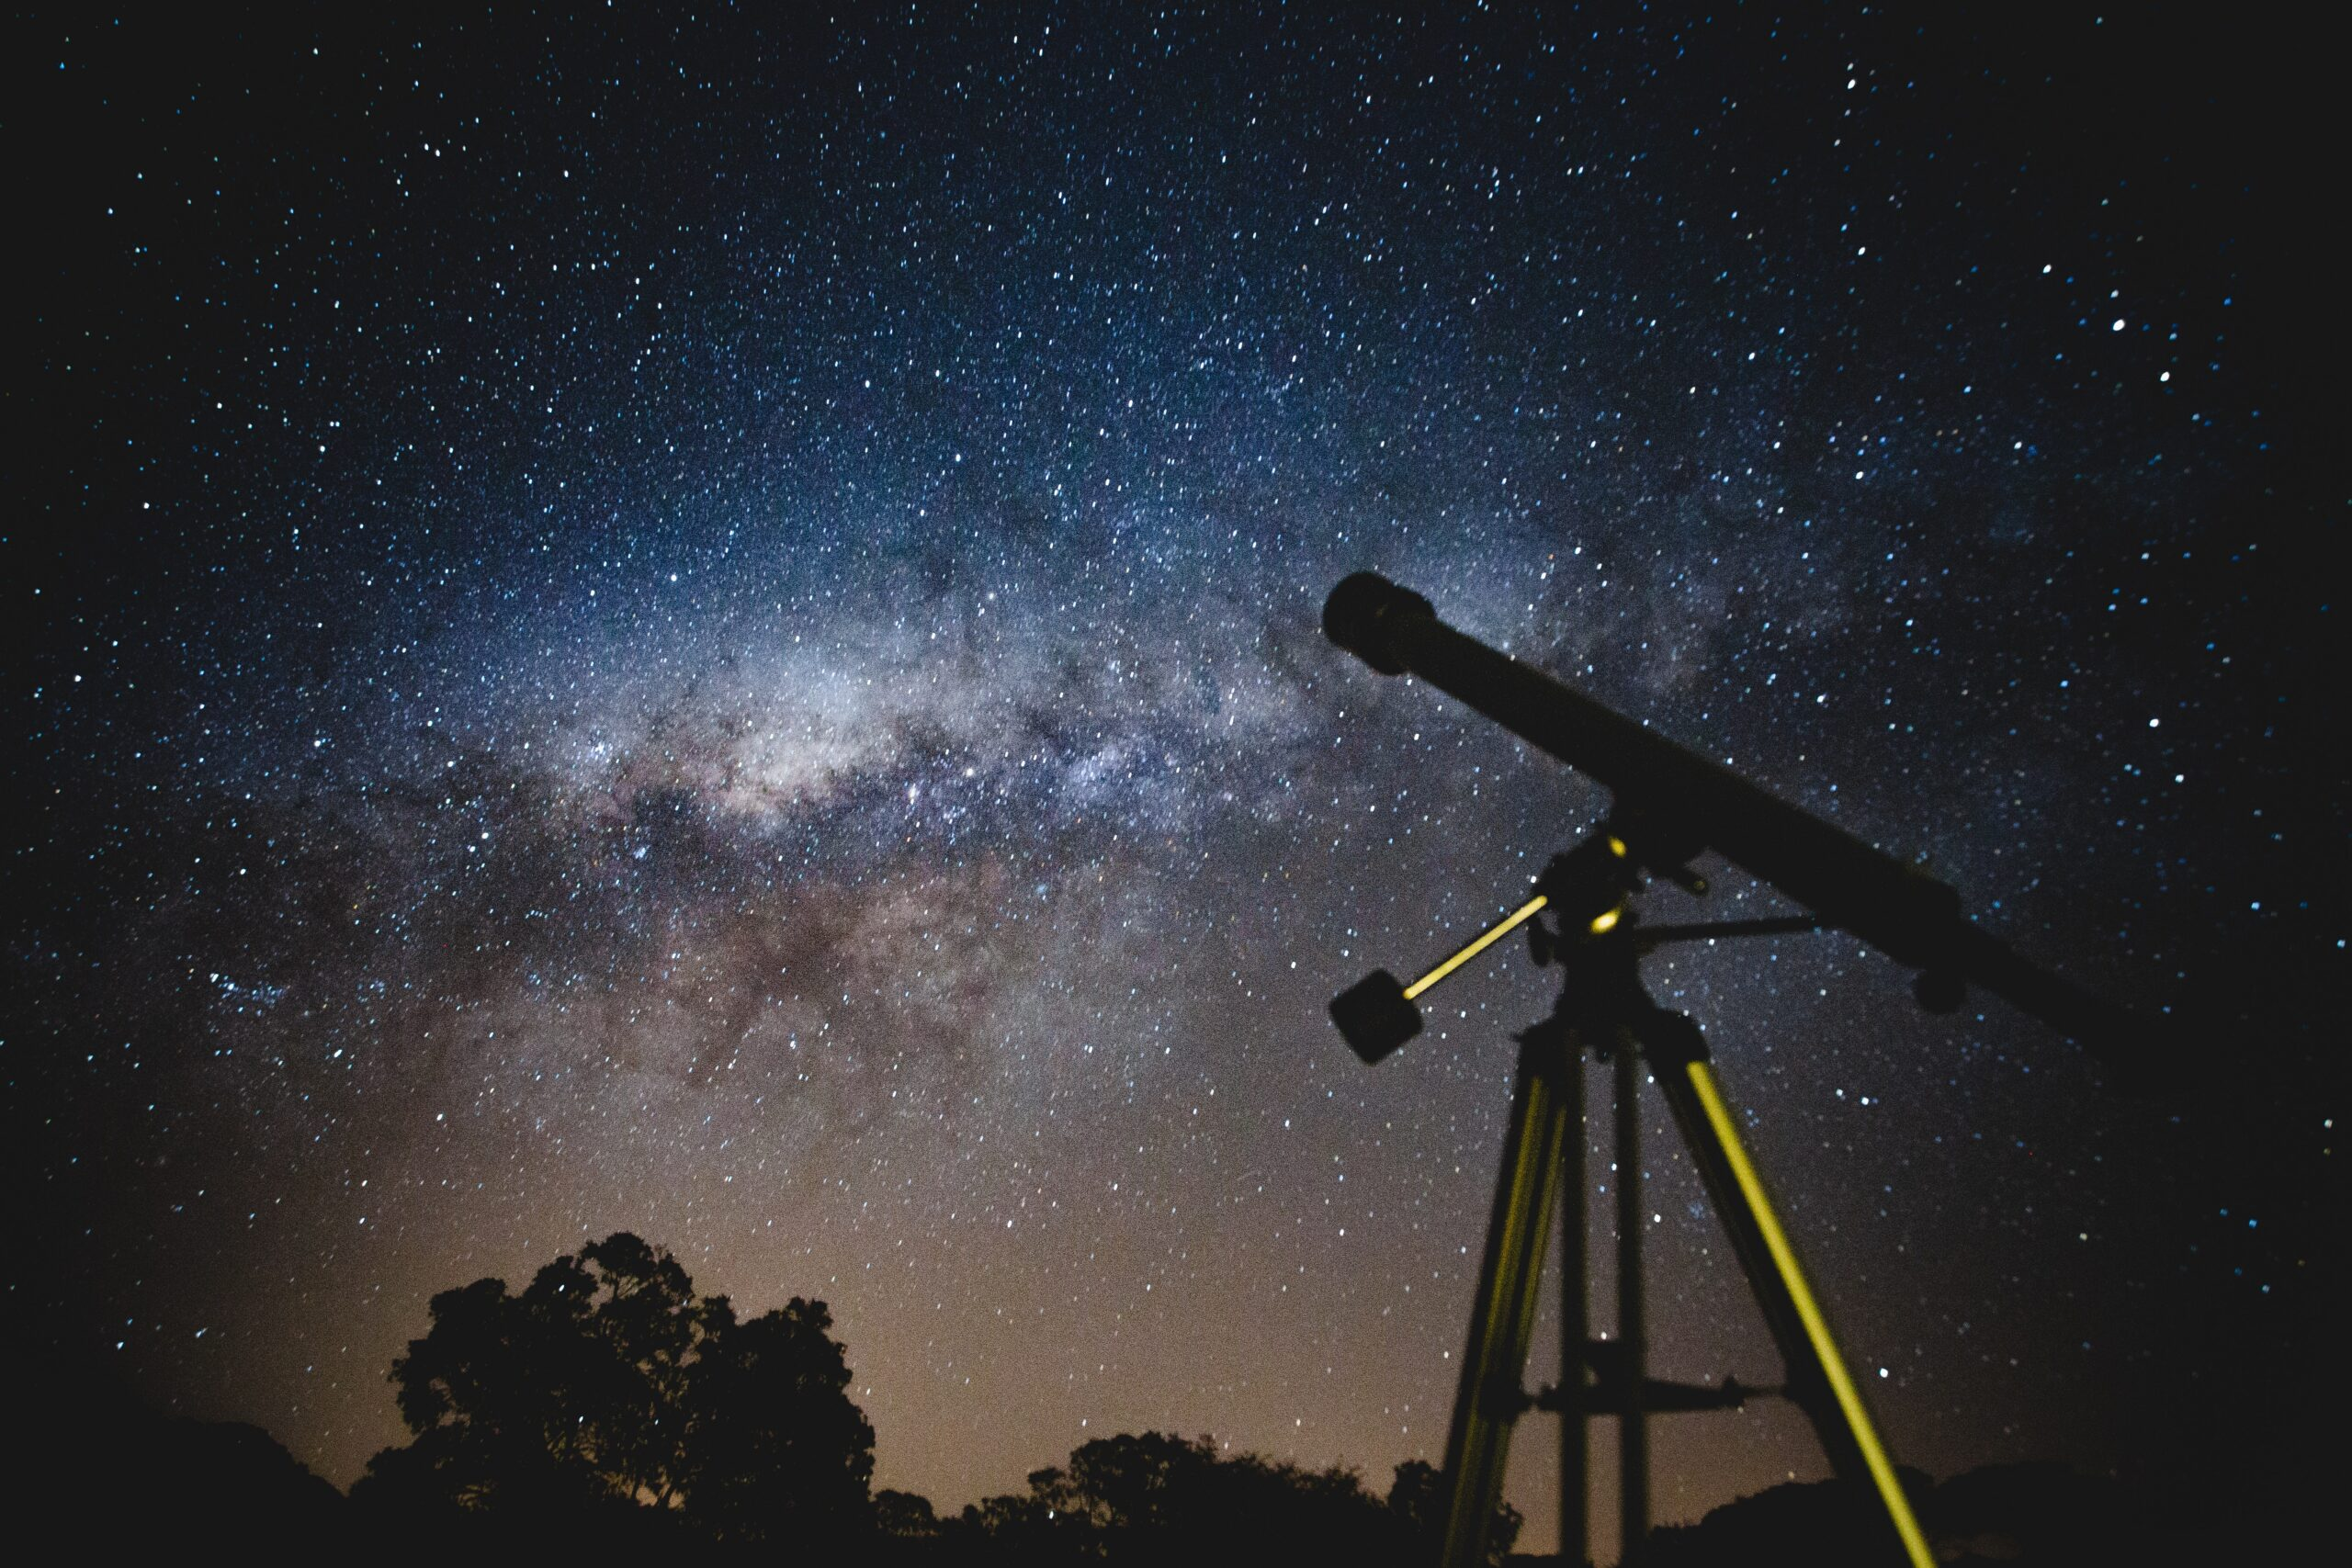 Binoculars vs. Telescopes: Key Differences and Why Binoculars are Better